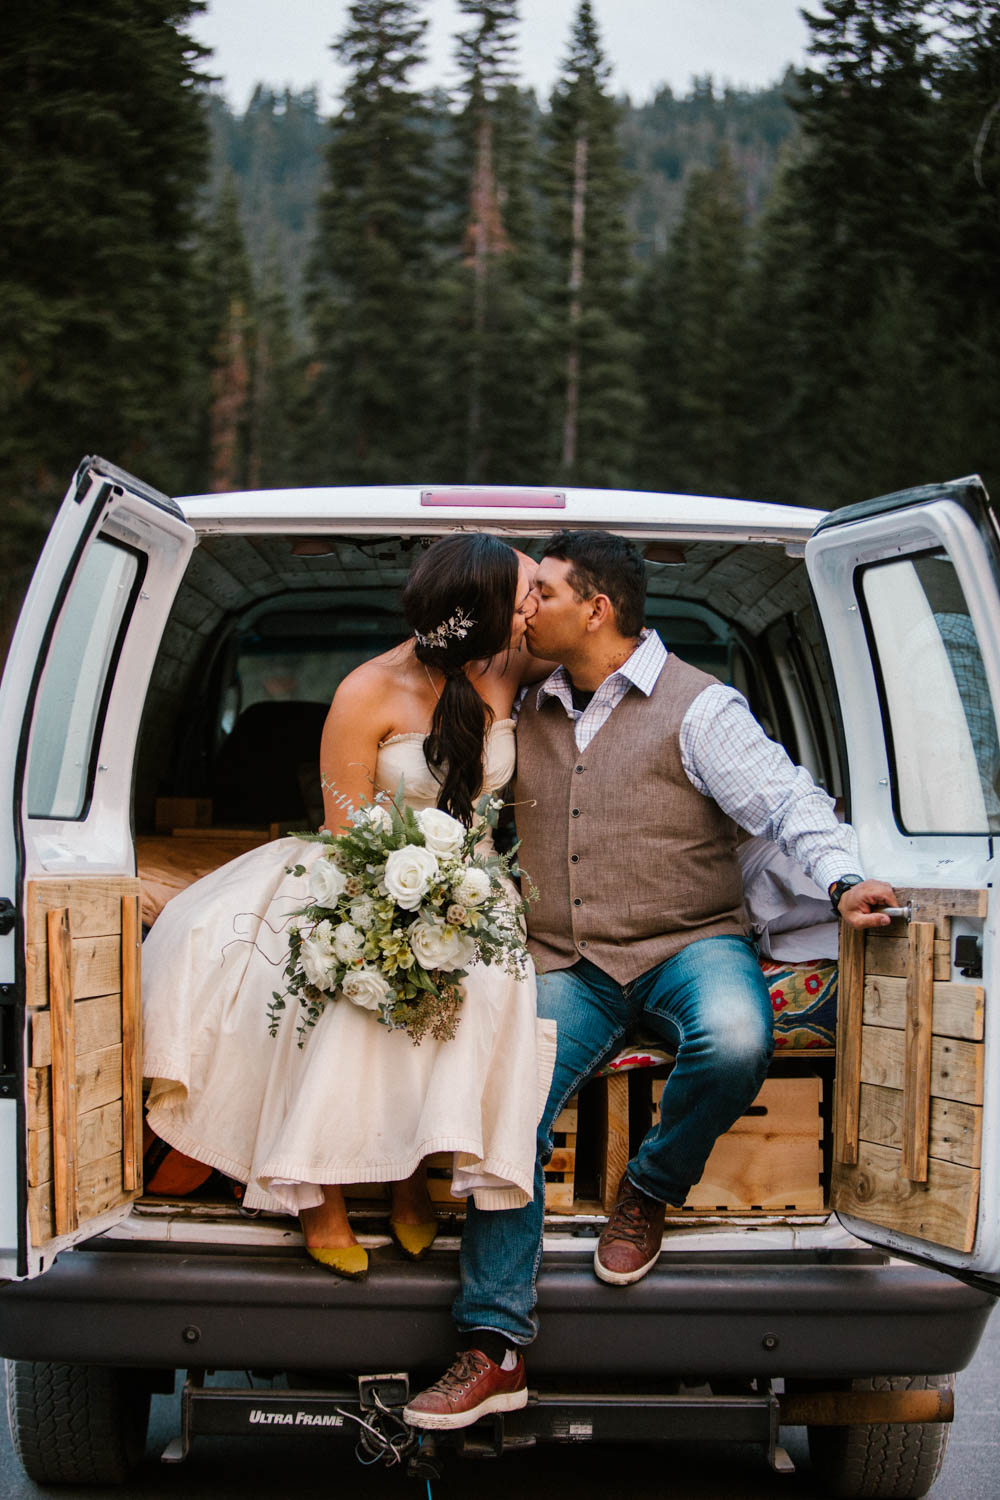 The Bride and Groom with their DIY camper van.